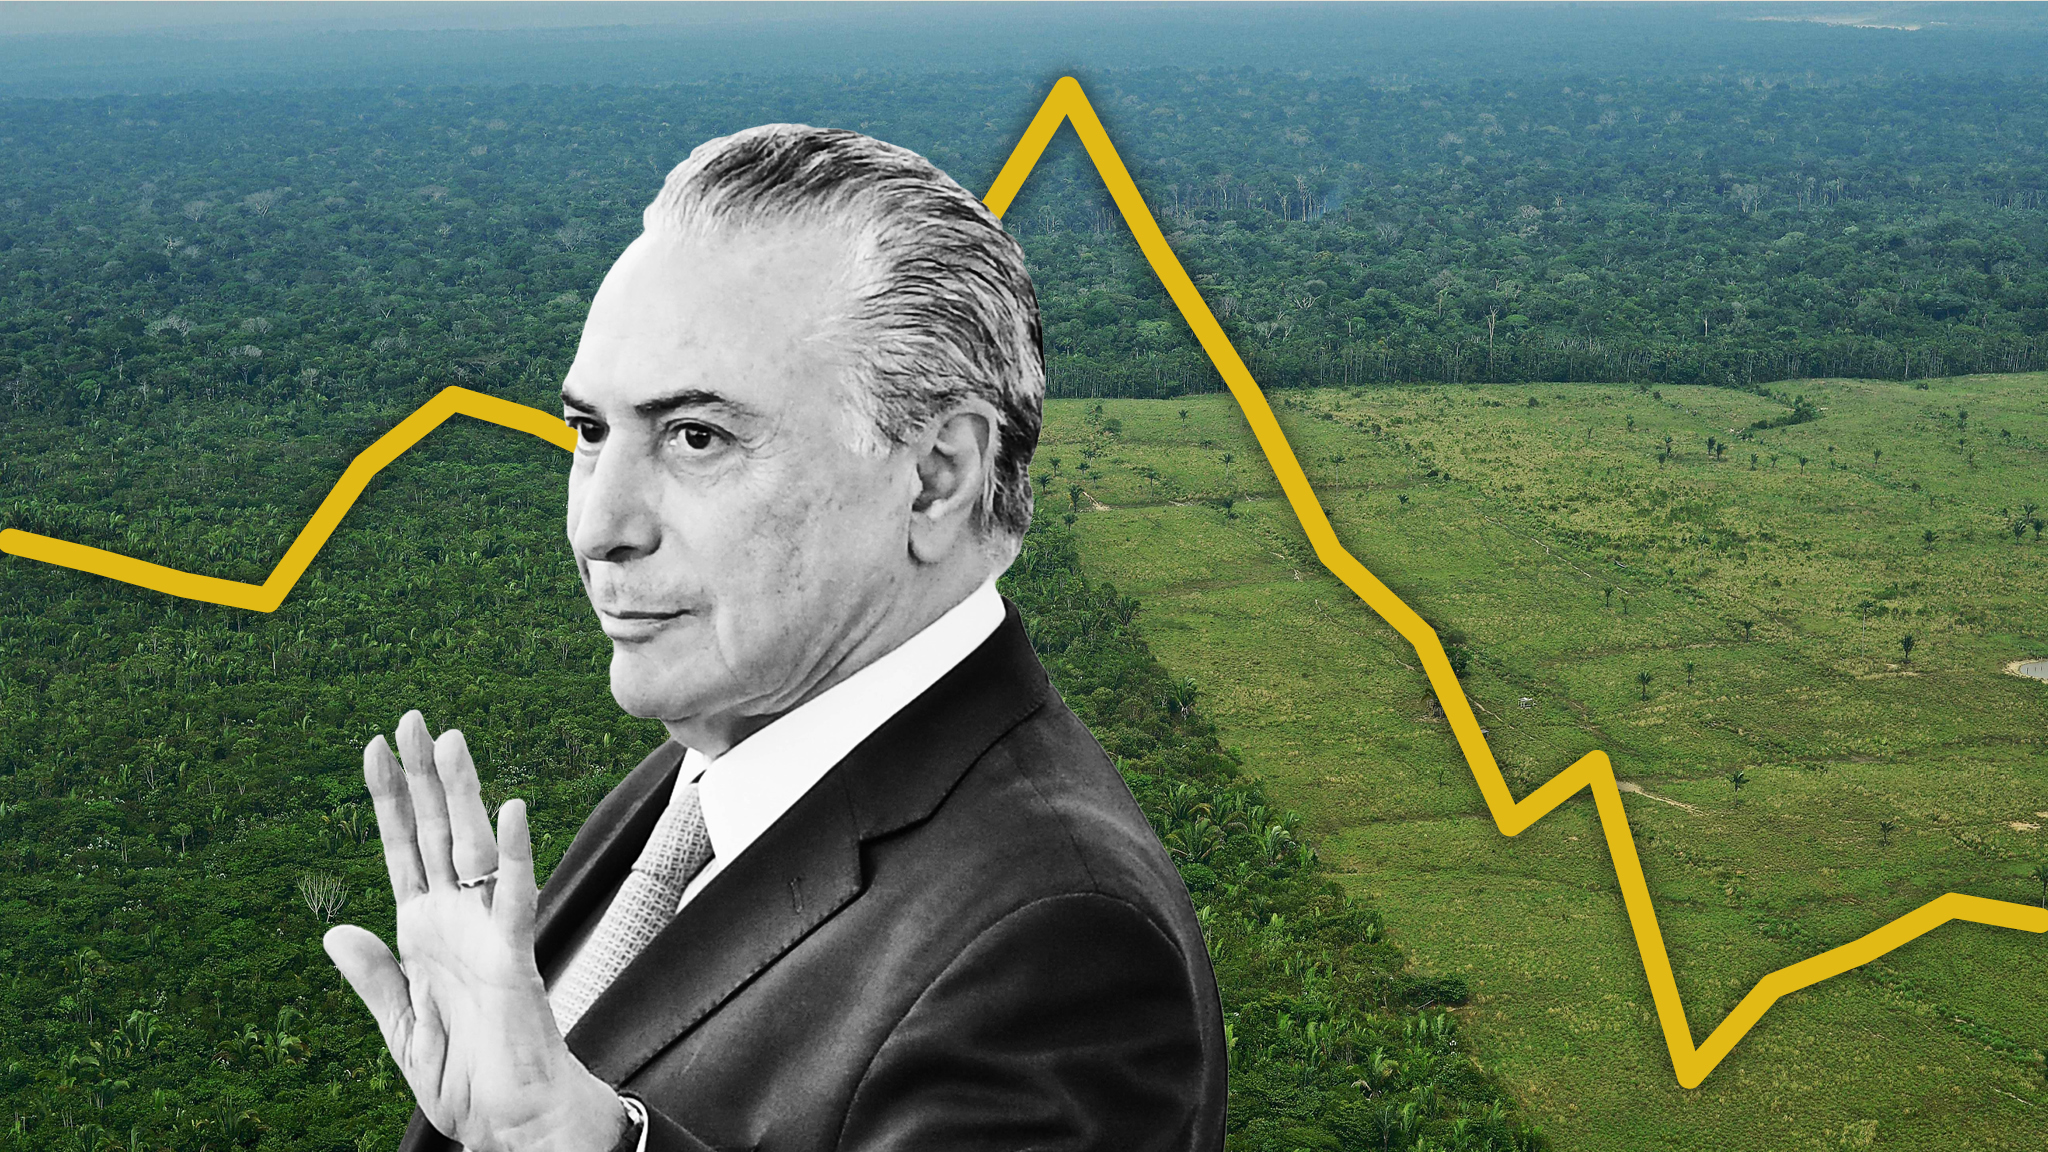 Brazil: Rainforest pays the price for the country's crisis